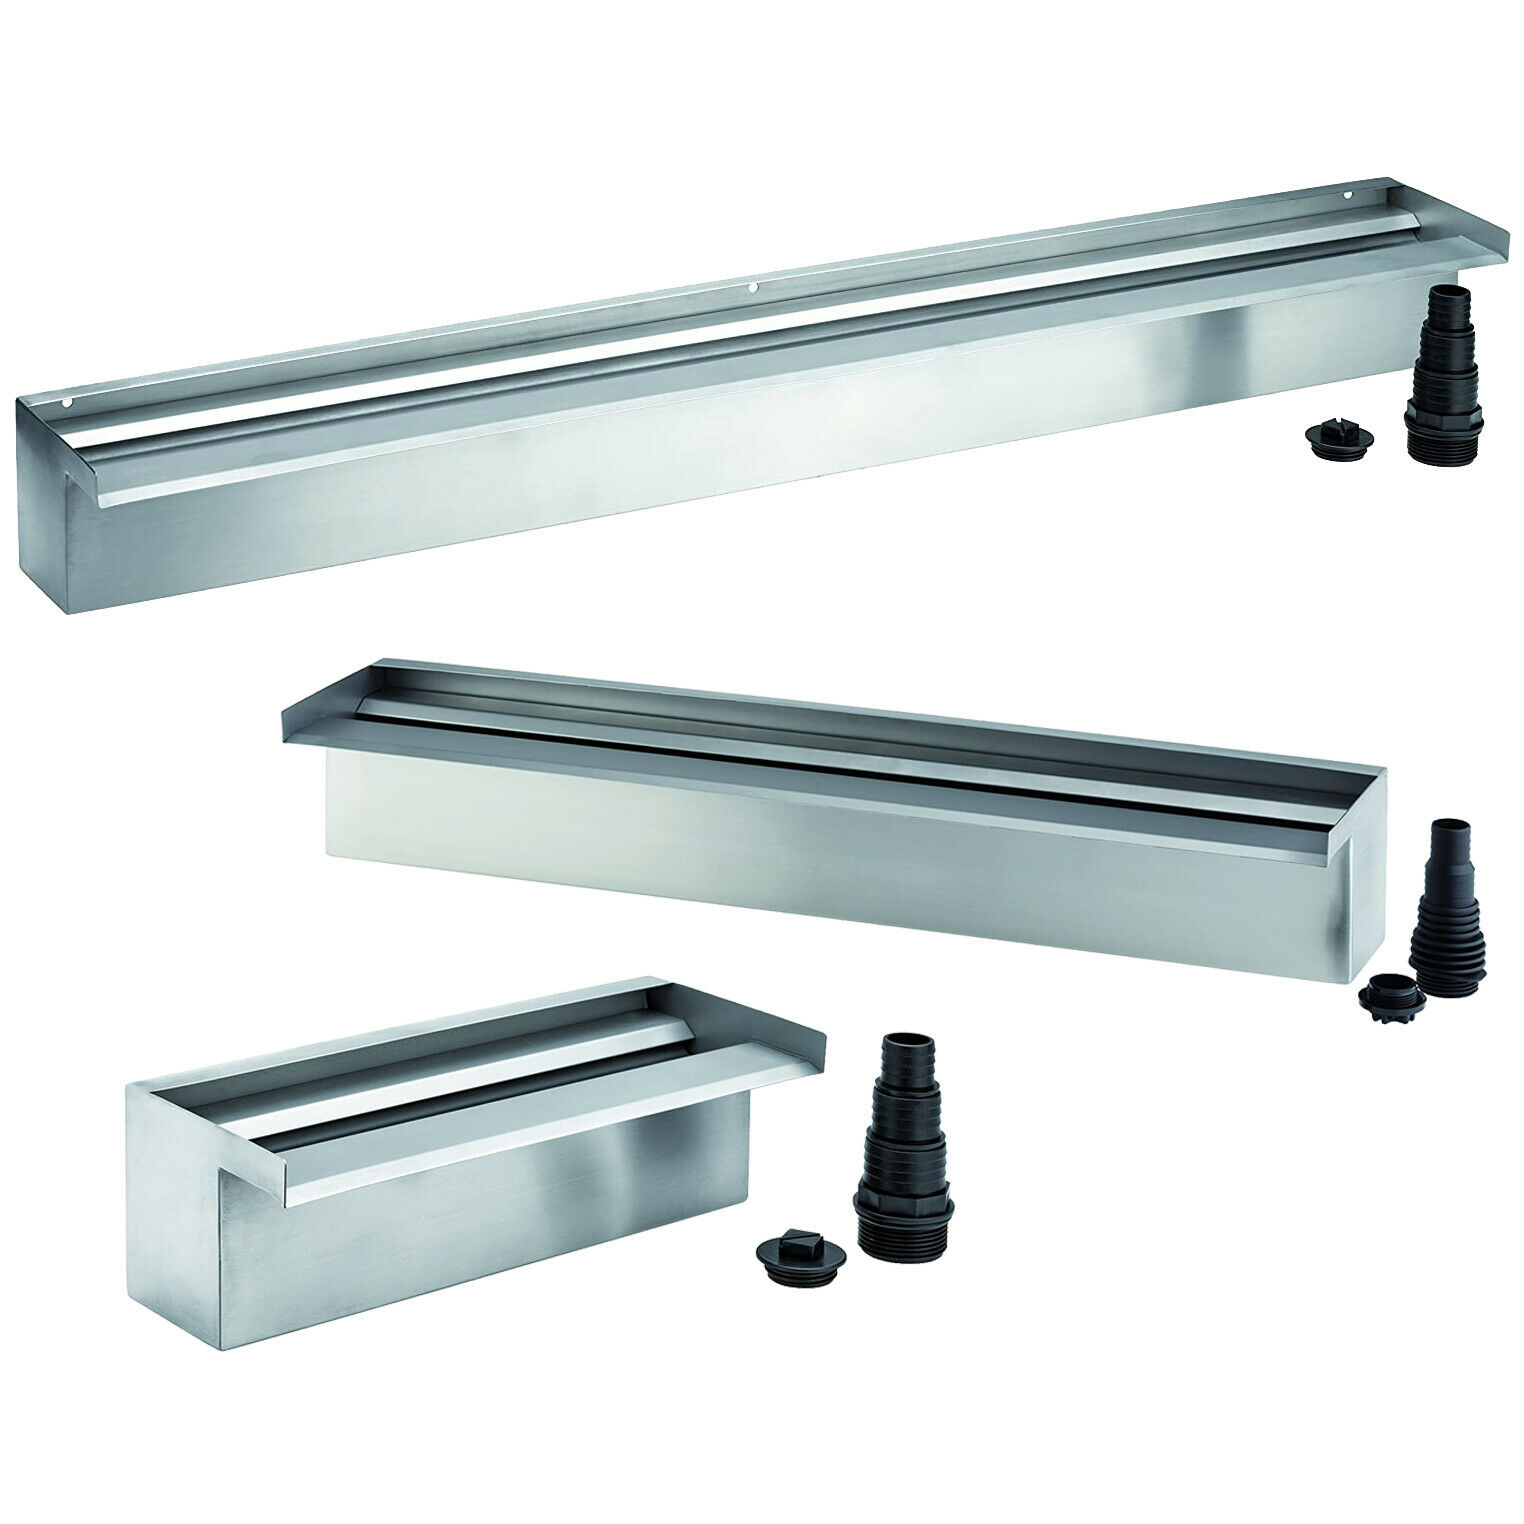 Oase Pond Waterfall 30 60 90 Water Blade XL LED Light Feature Stainless Steel